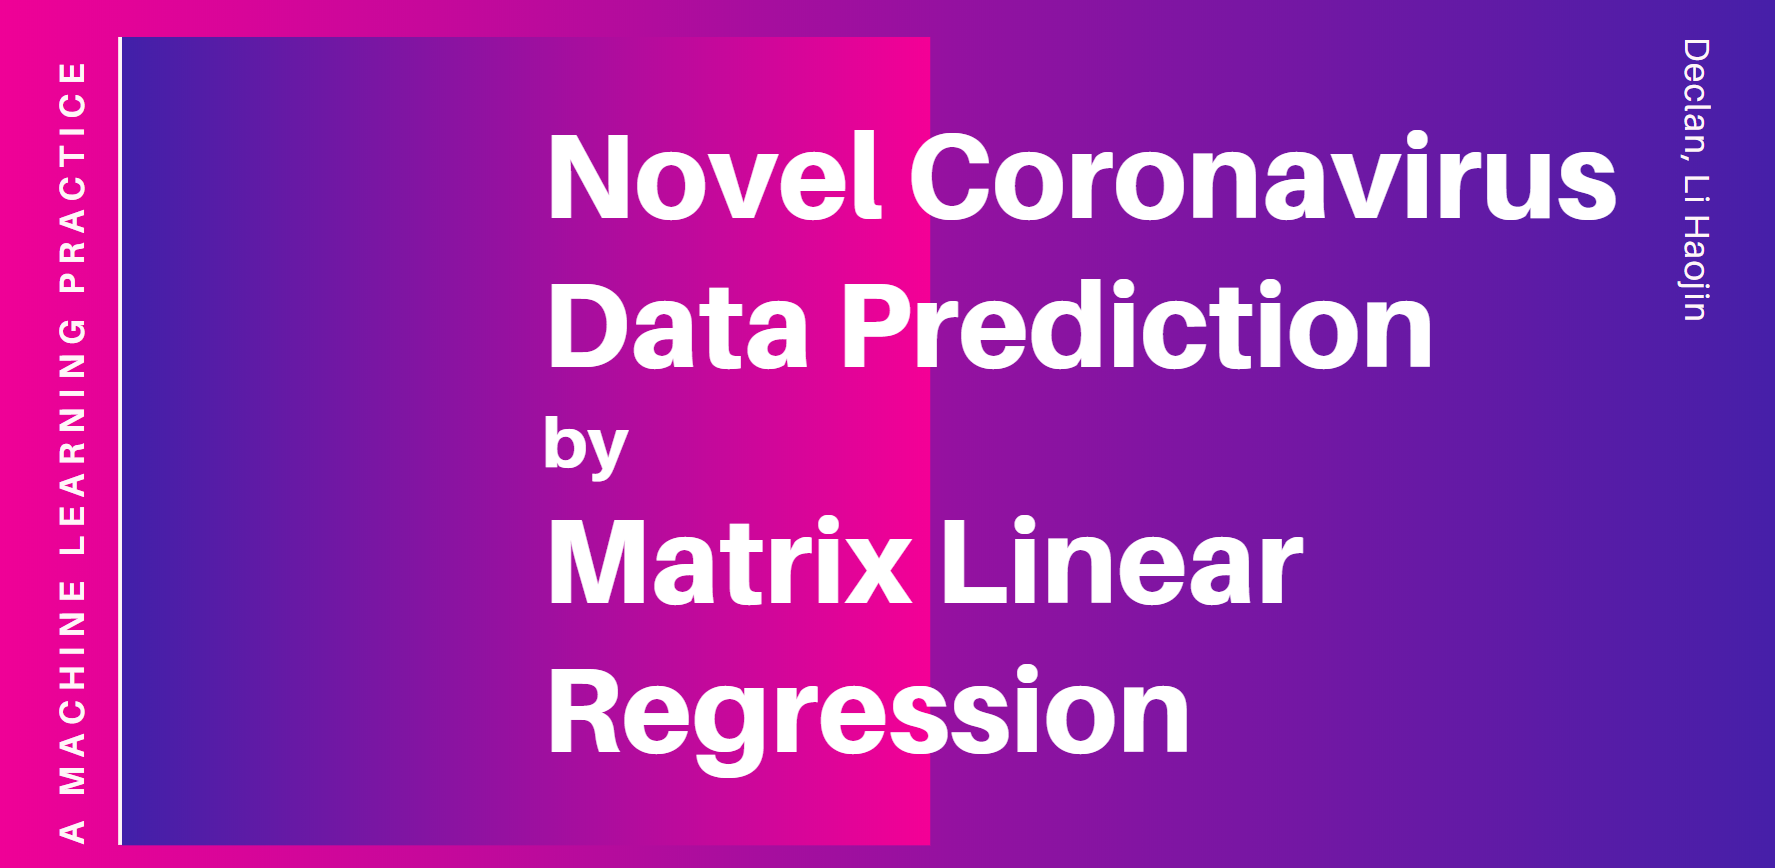 2019-nCoV Data Prediction